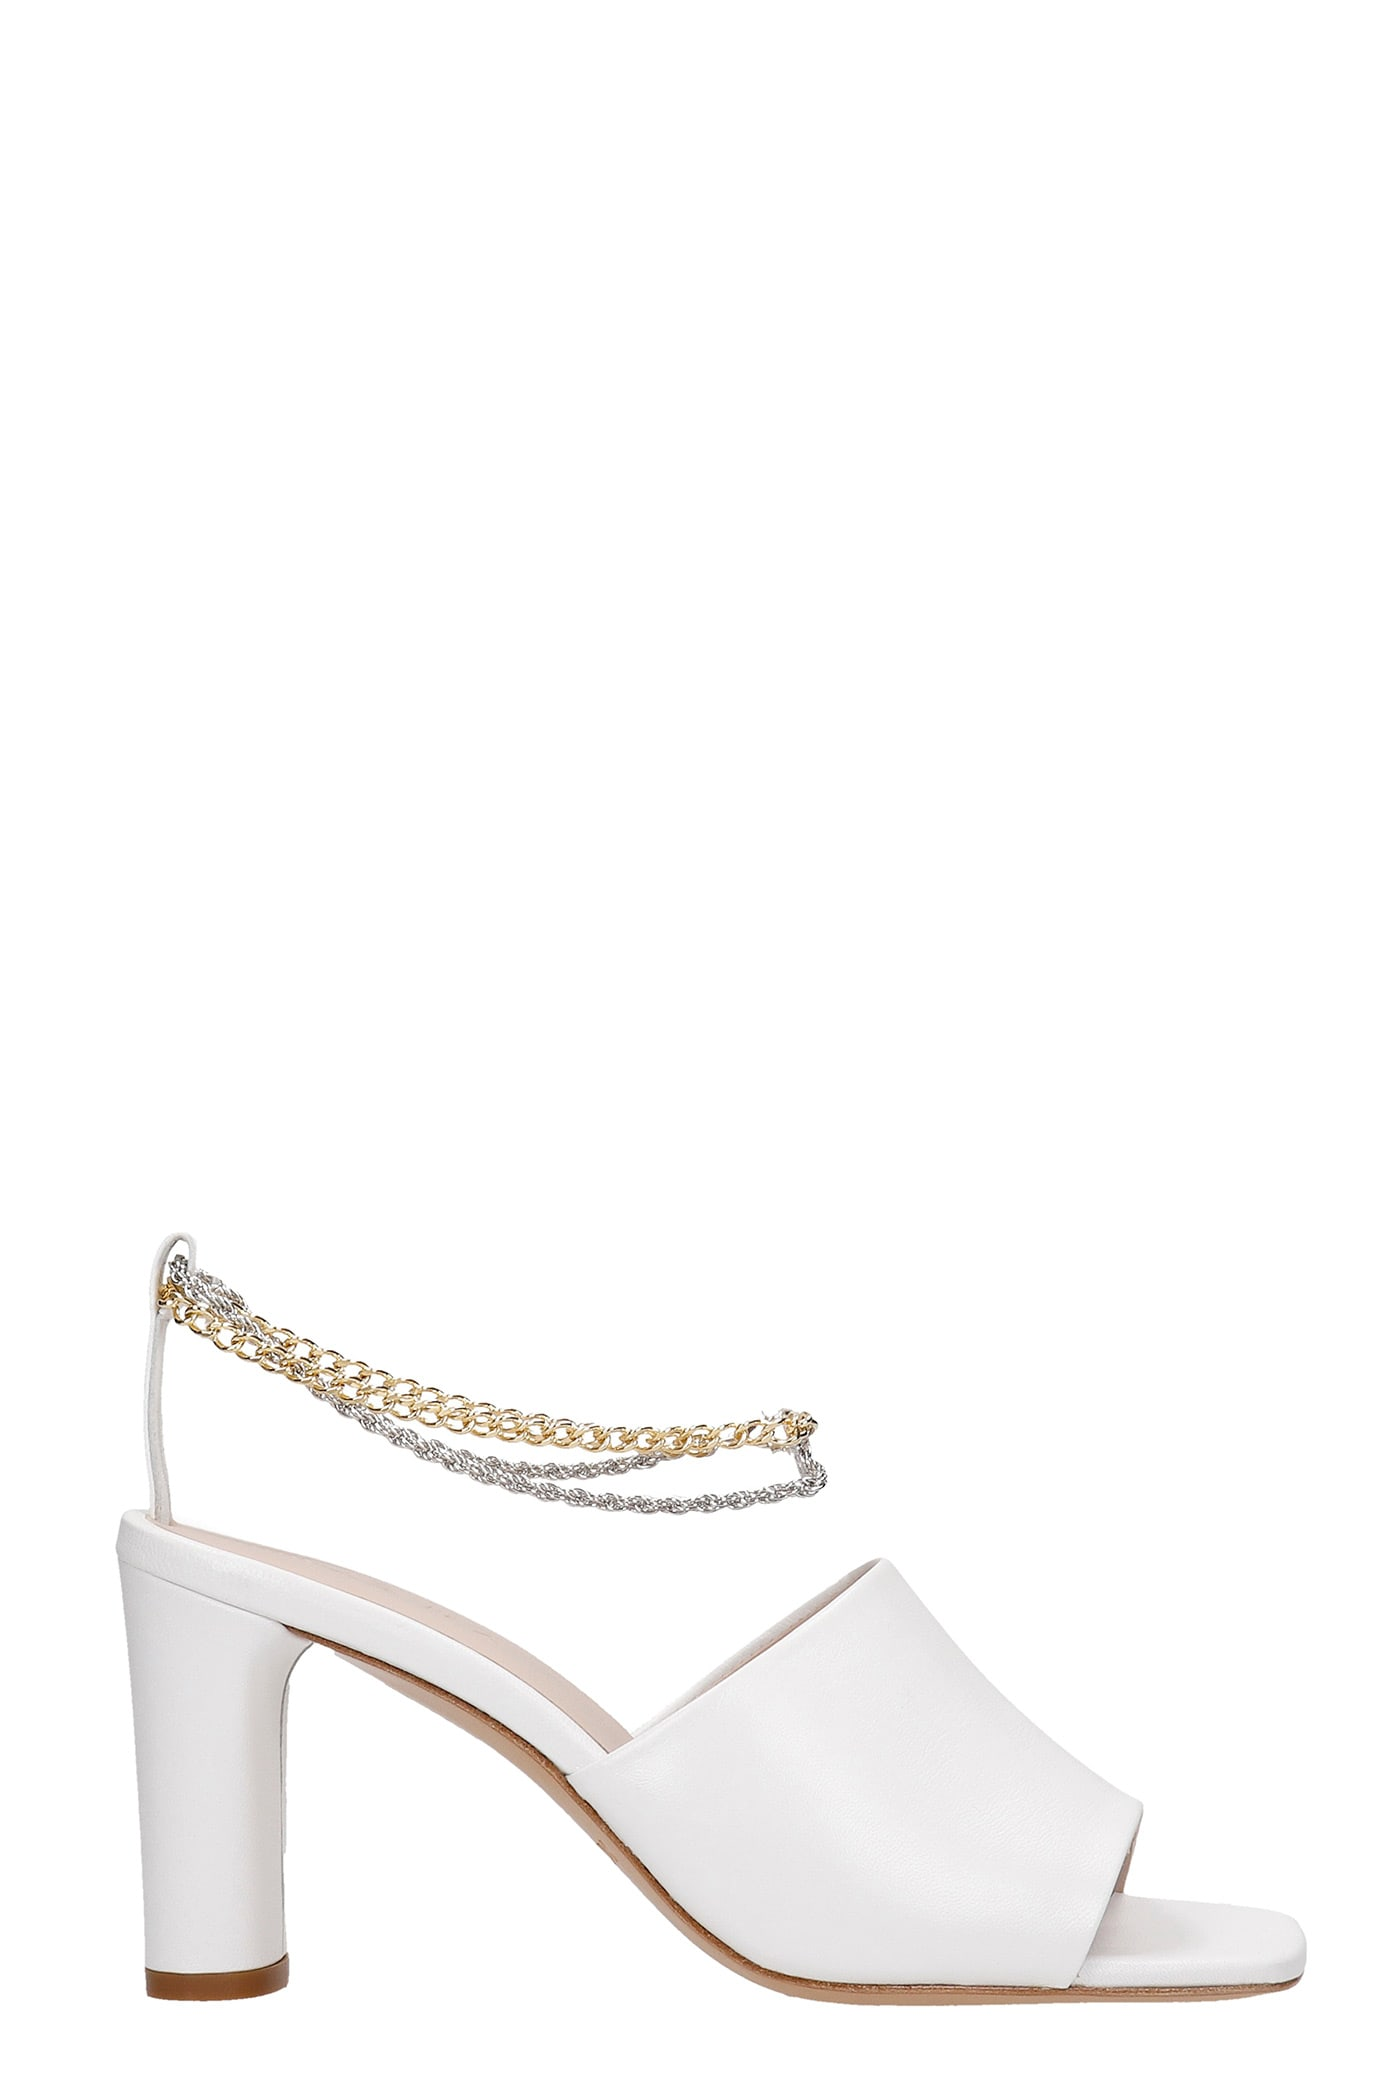 Inez Sandals In White Leather